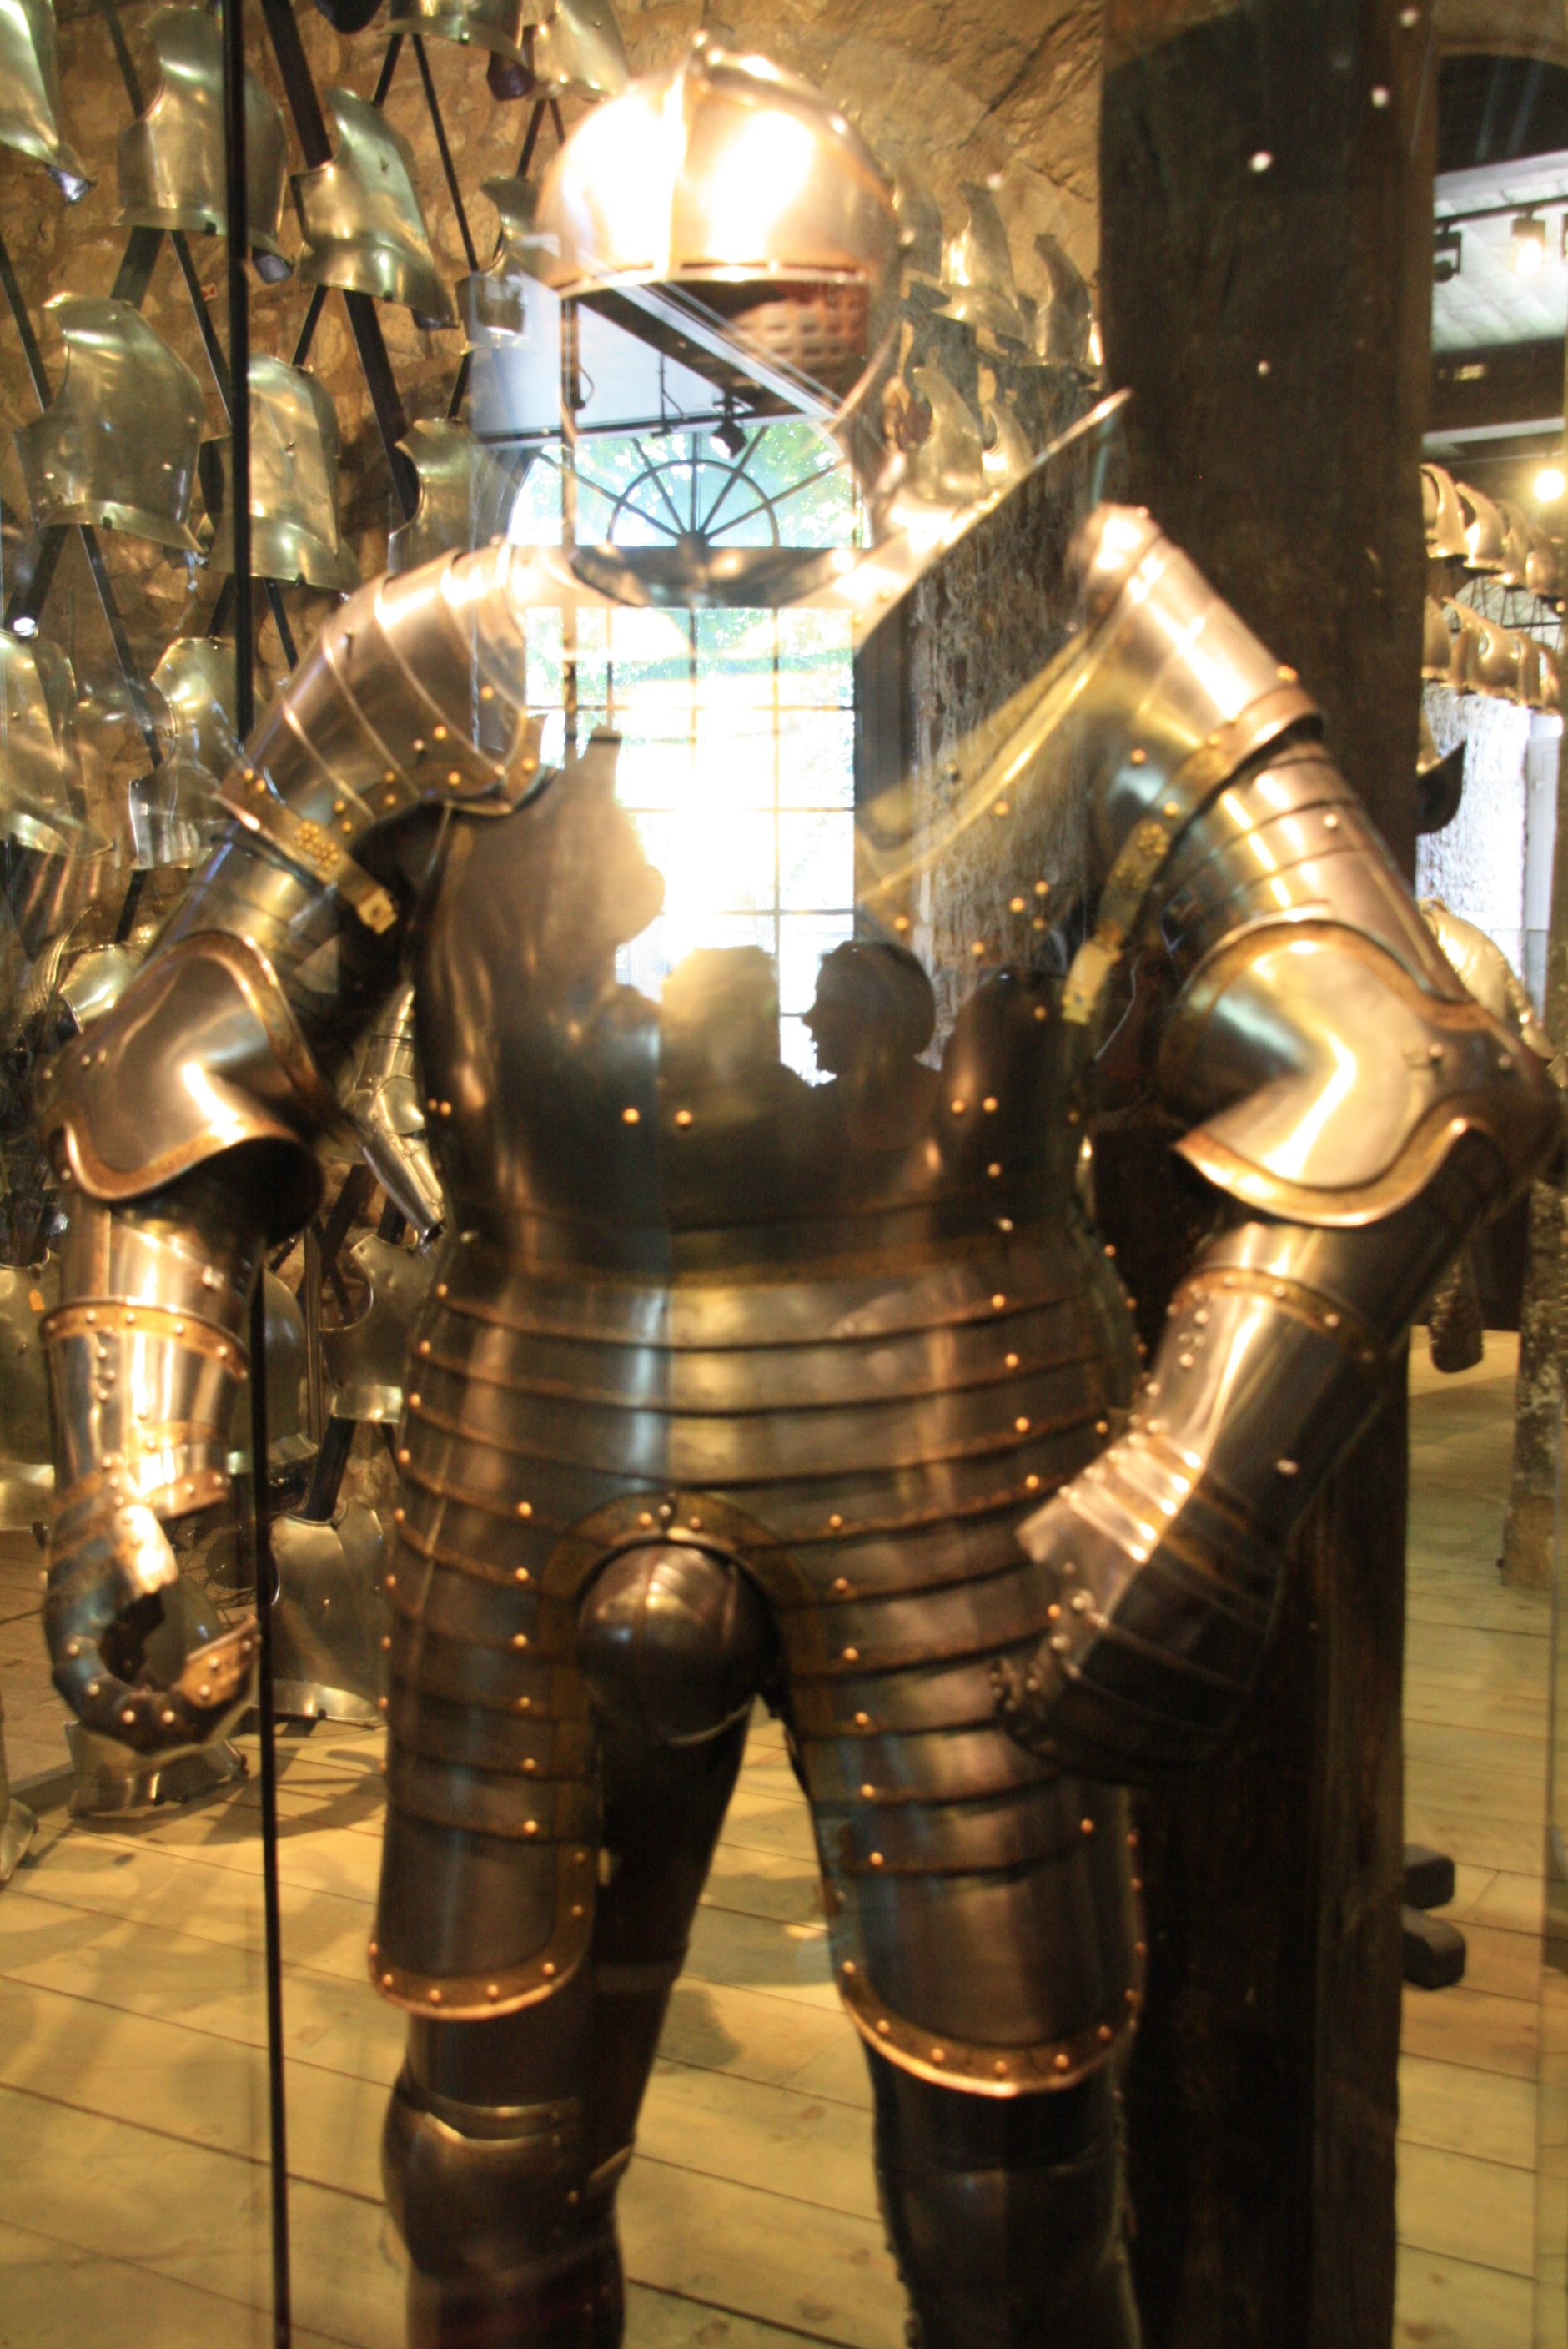 king henry viii suit of armor medieval armor tower of london henry viii